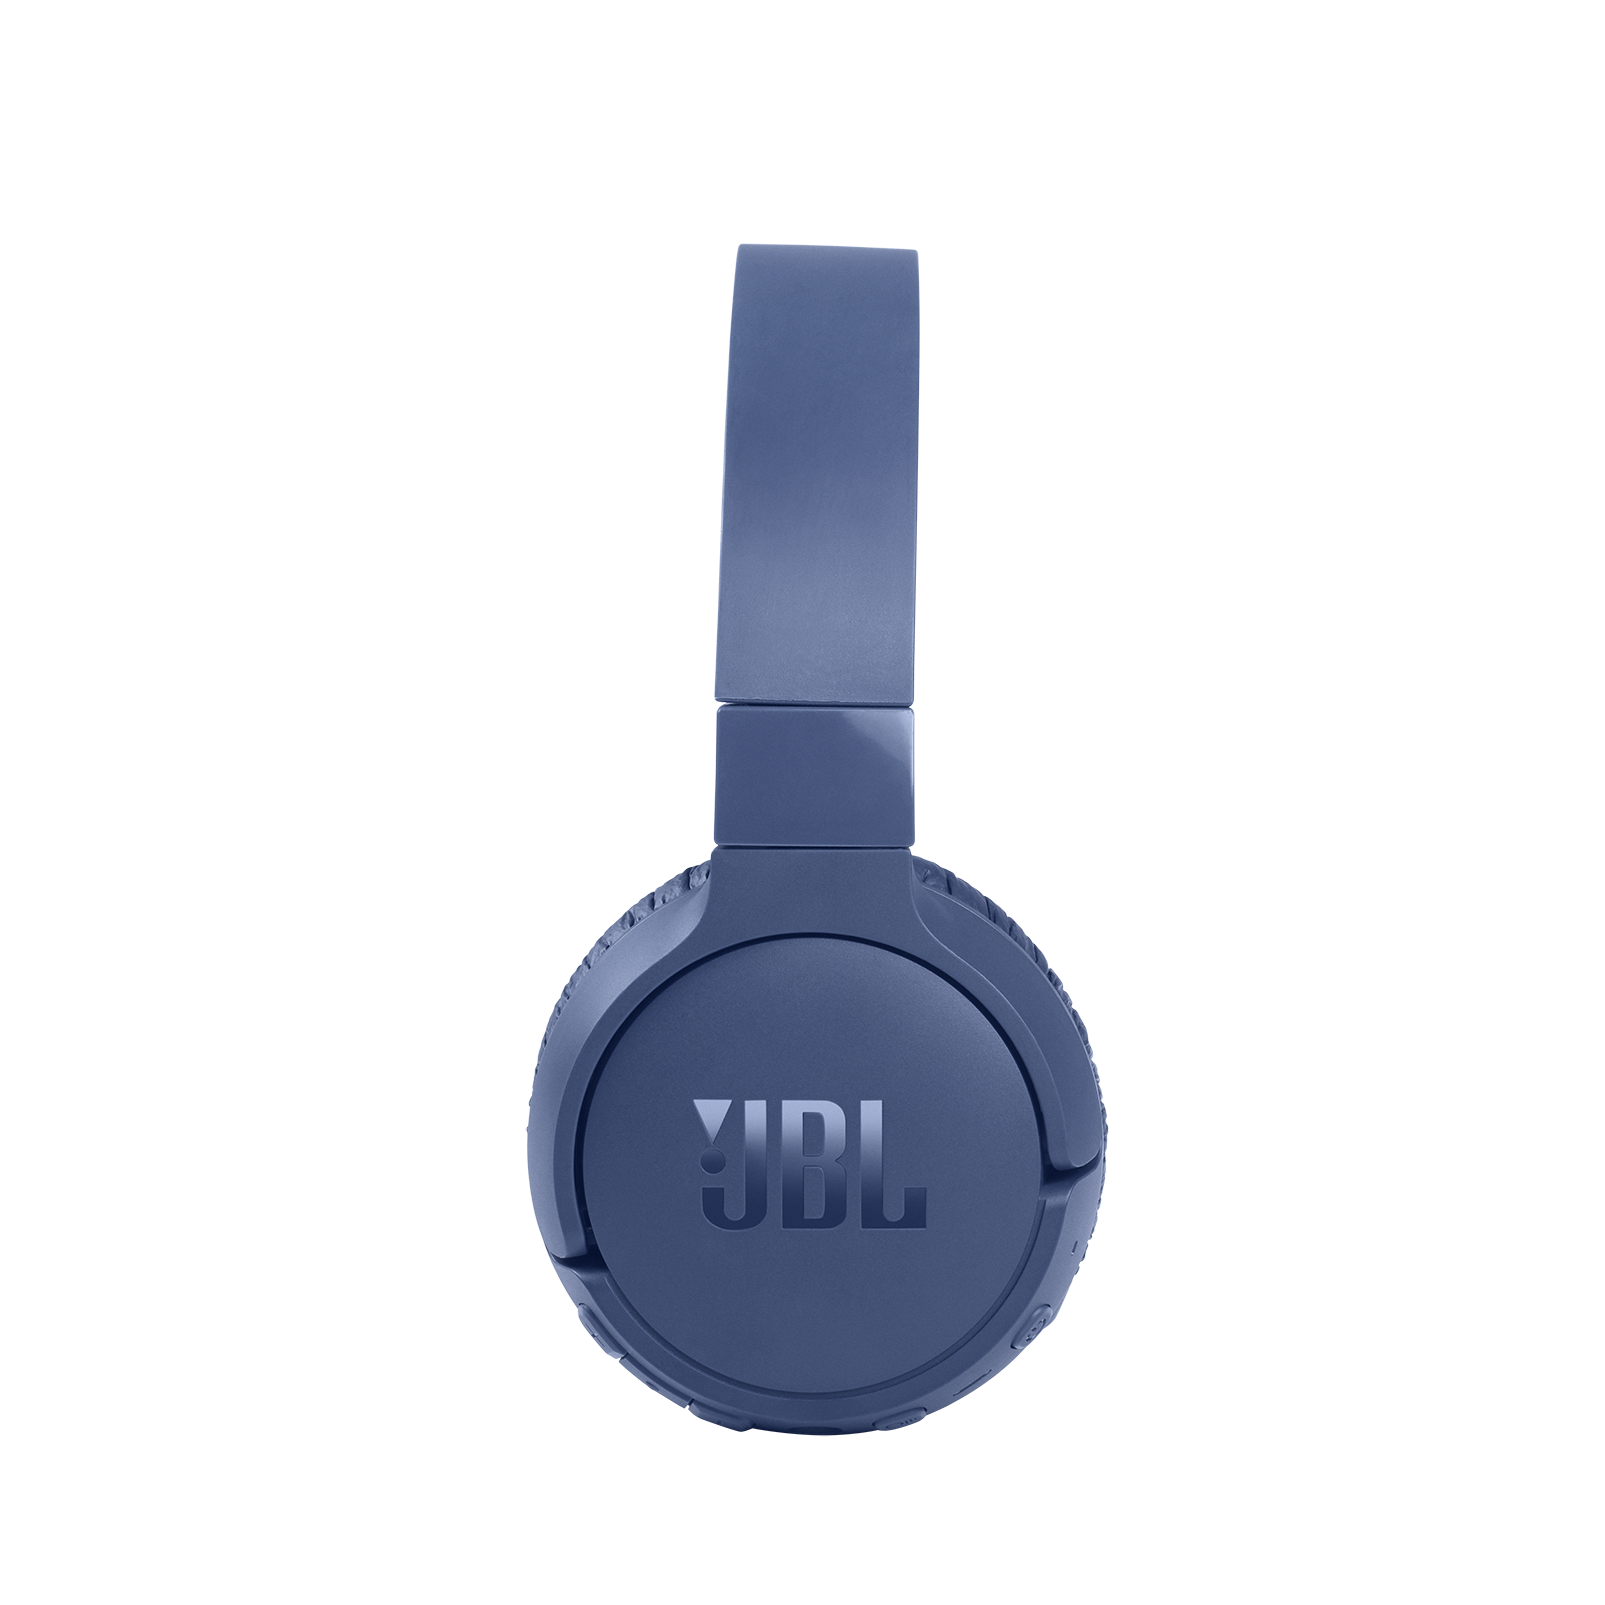 JBL Tune 660NC - Blue - Wireless, on-ear, active noise-cancelling headphones. - Detailshot 1